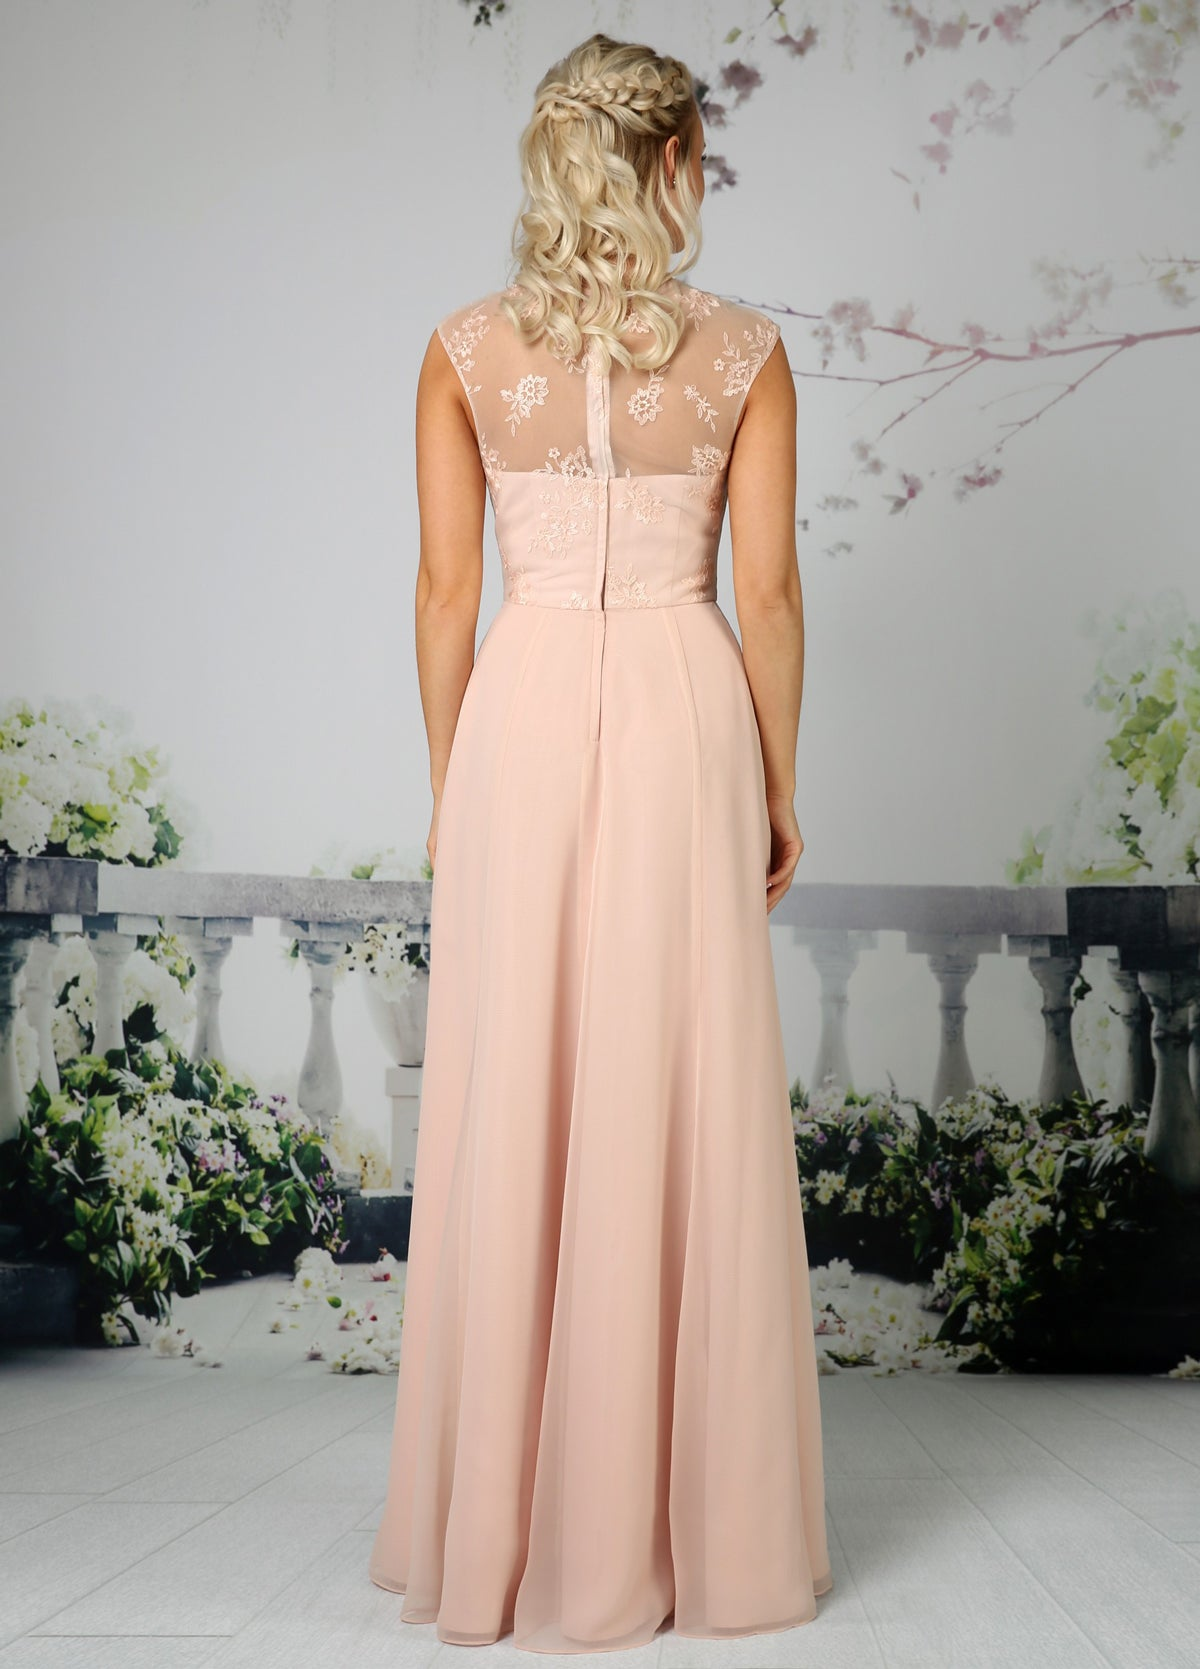 Full length A-Line chiffon bridesmaid dress